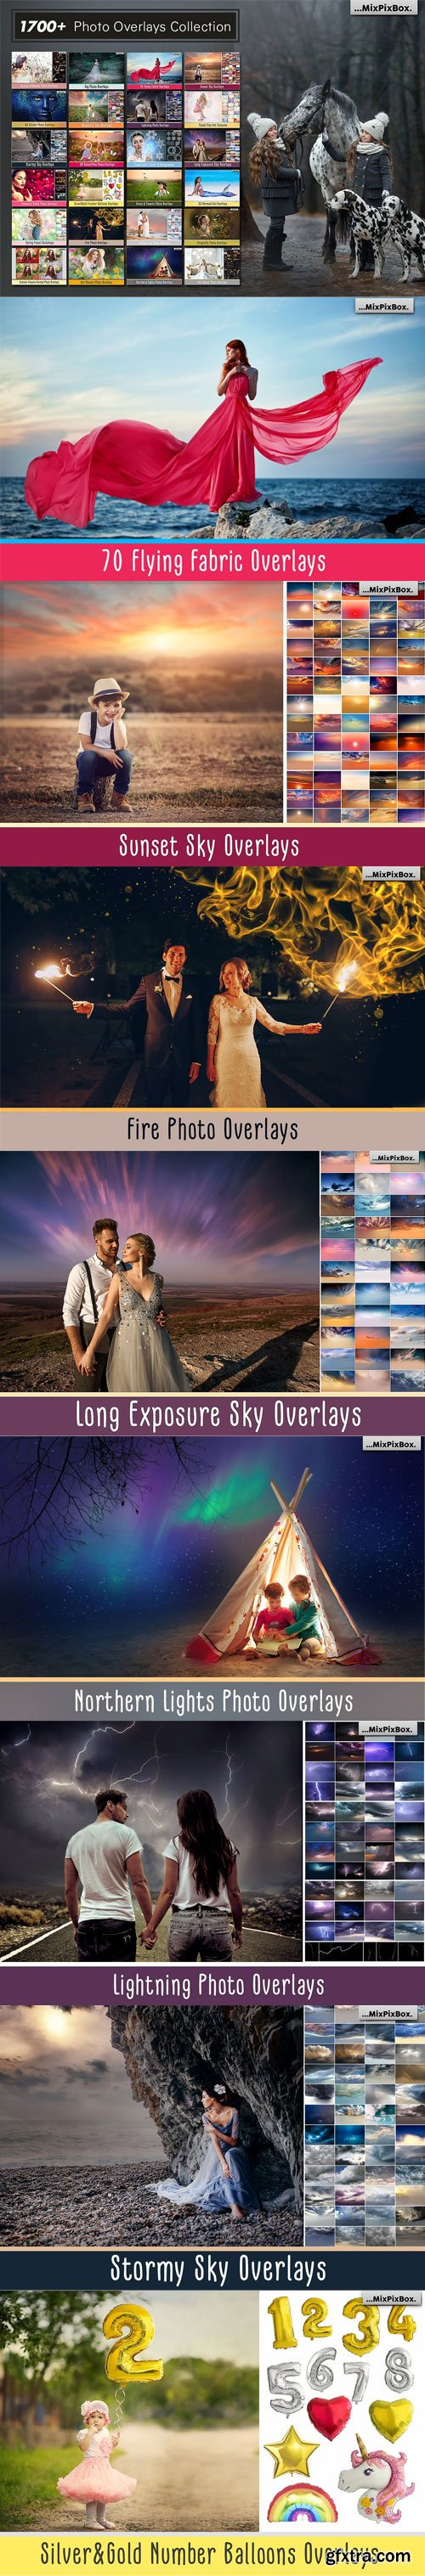 1700+ PHOTO OVERLAYS, LONG EXPOSURE, GLITTER, NUMBER BALLOONS, DIGITAL PAPERS + MORE!